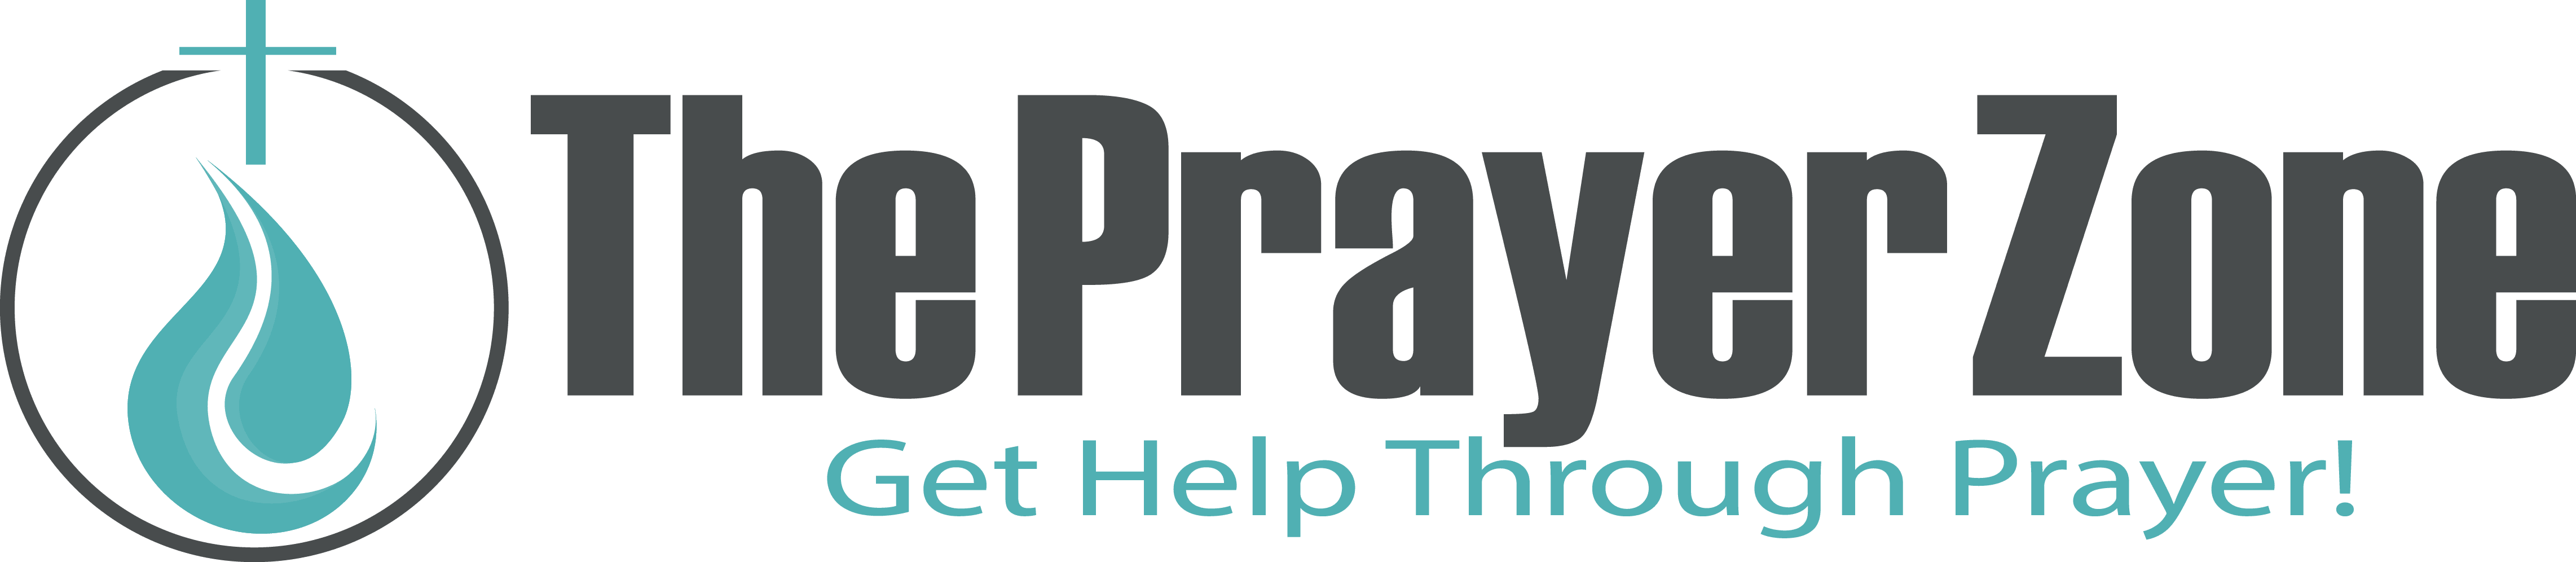 the prayer zone Get help through prayer